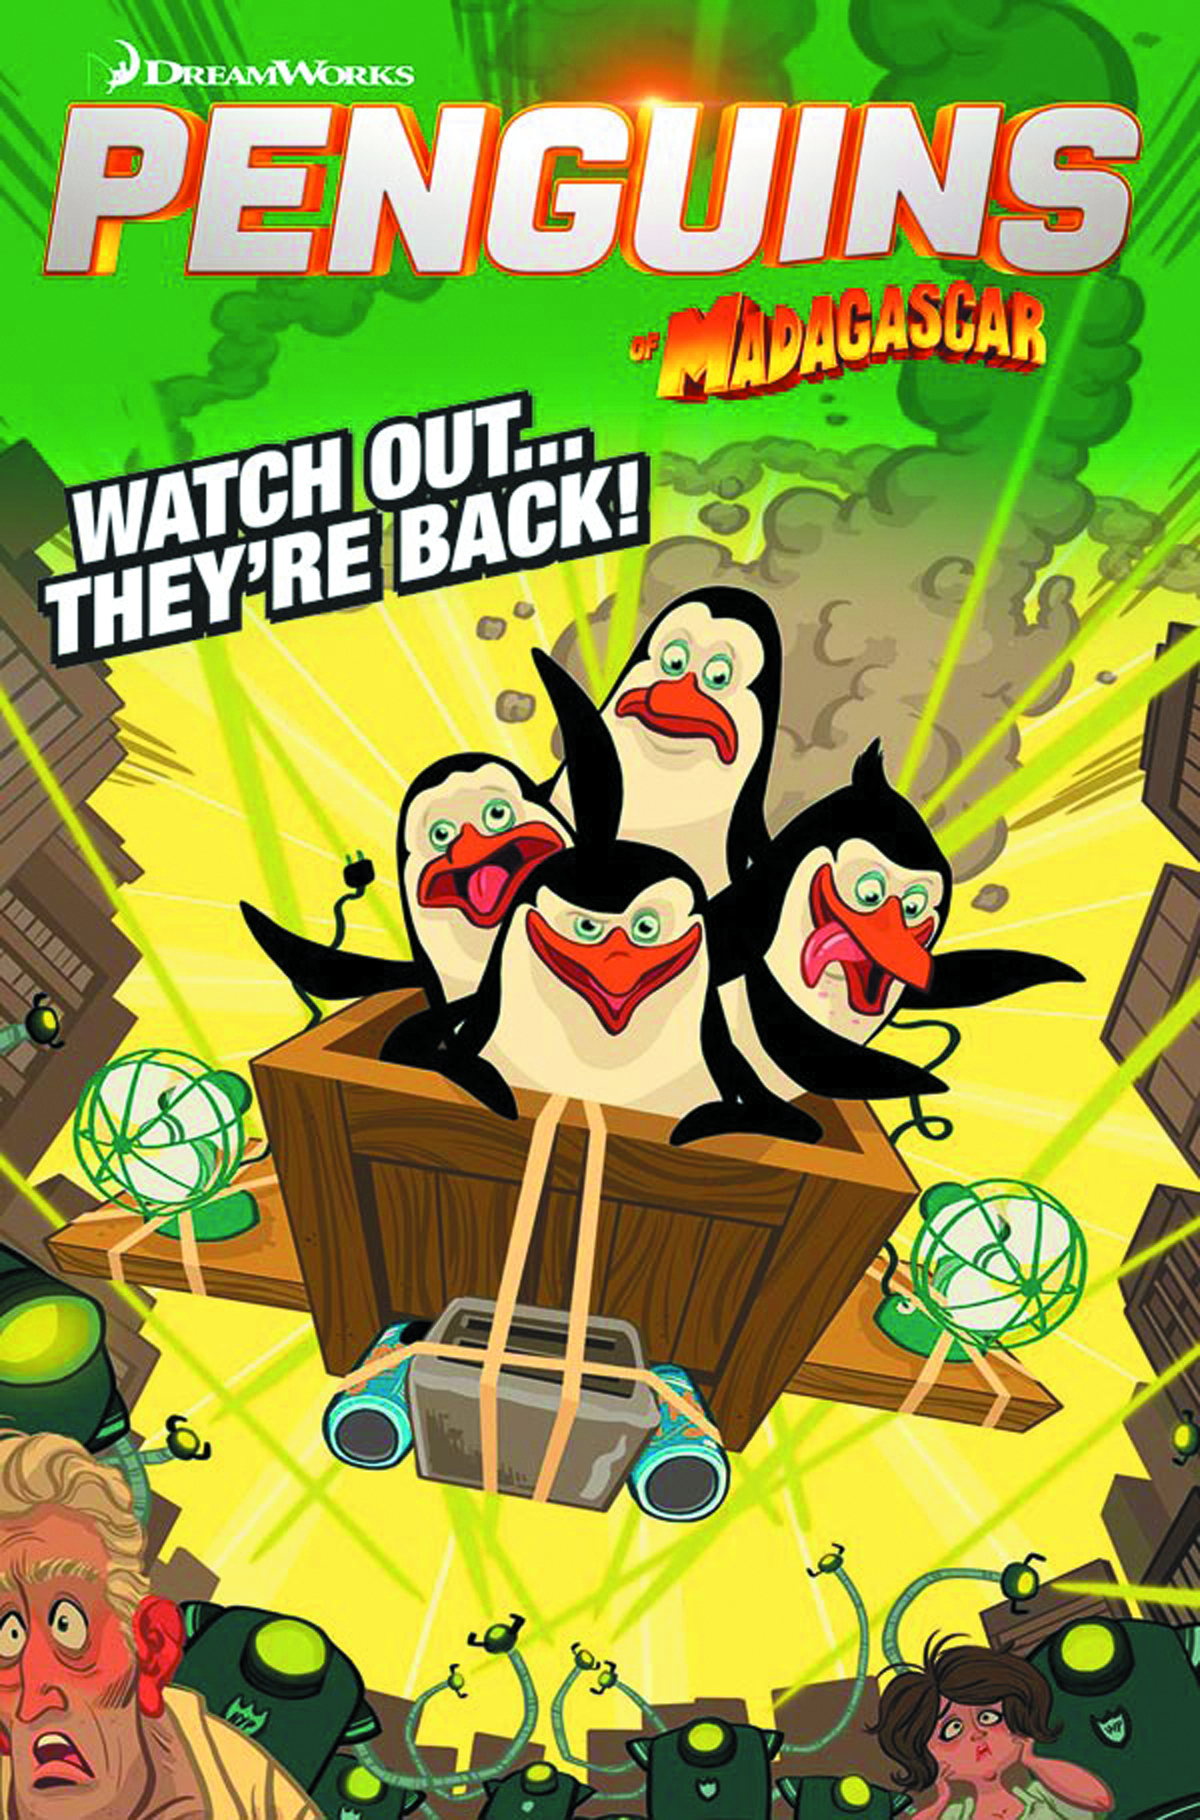 PENGUINS OF MADAGASCAR ELITEST OF ELITE #1